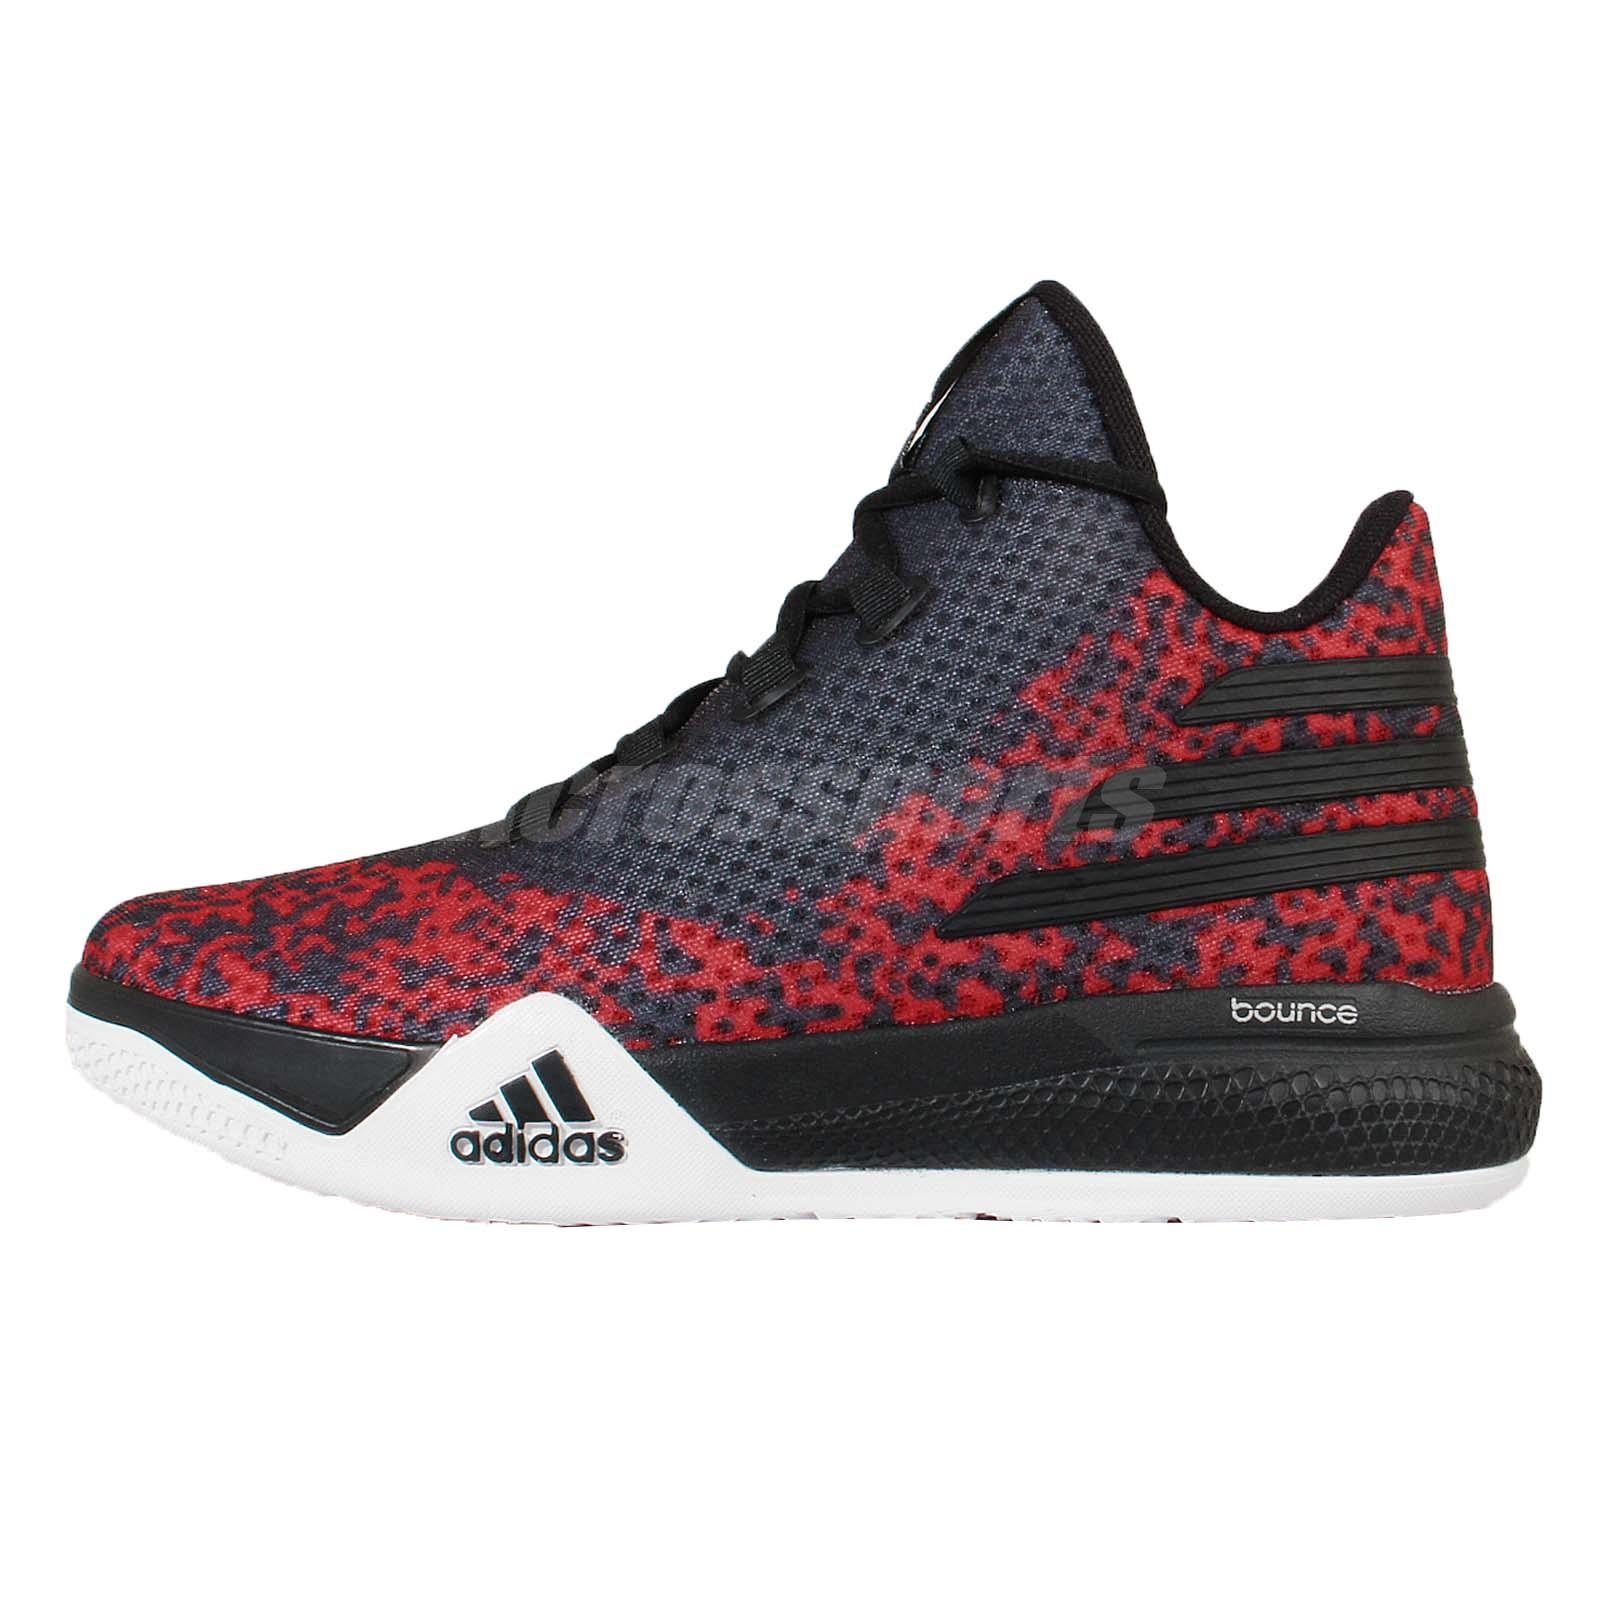 Adidas Light Em Up Basketball Shoes